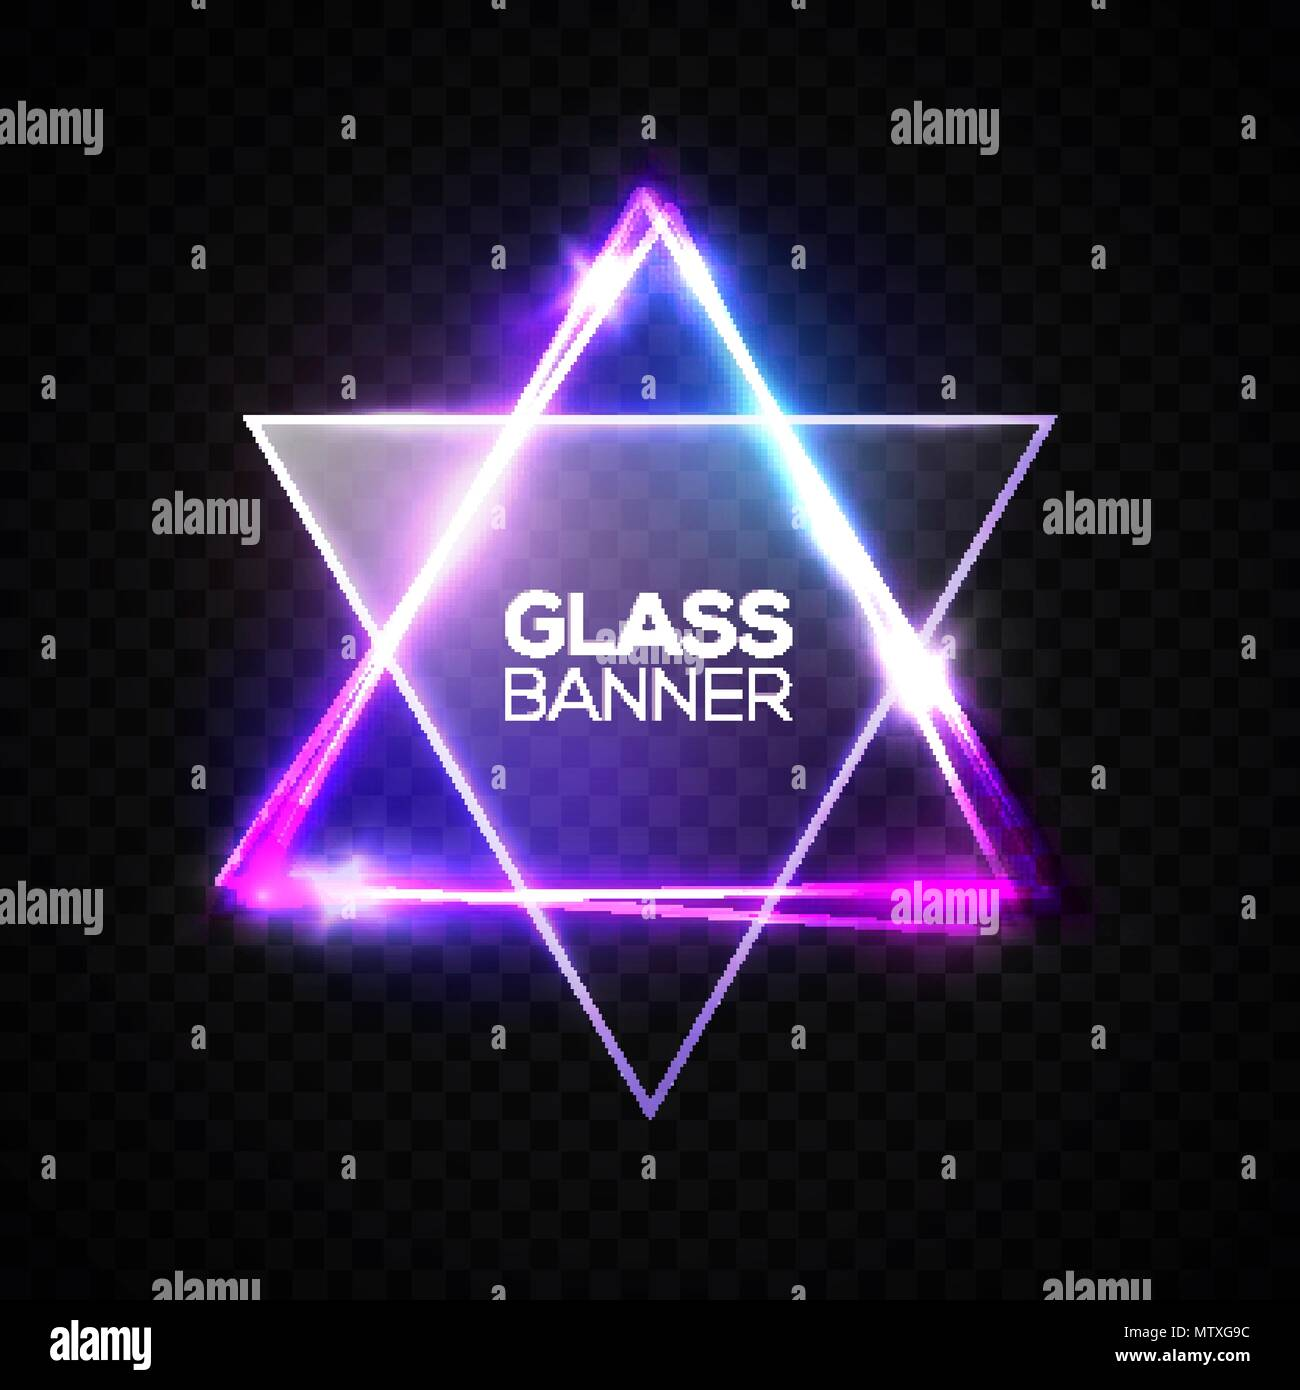 David star. Neon sign. Triangle banner with transparent glass plate. Judaism flag. Hebrew Israel glow symbol art. Electric abstract frame on transparent backdrop Religious light vector illustration. - Stock Vector